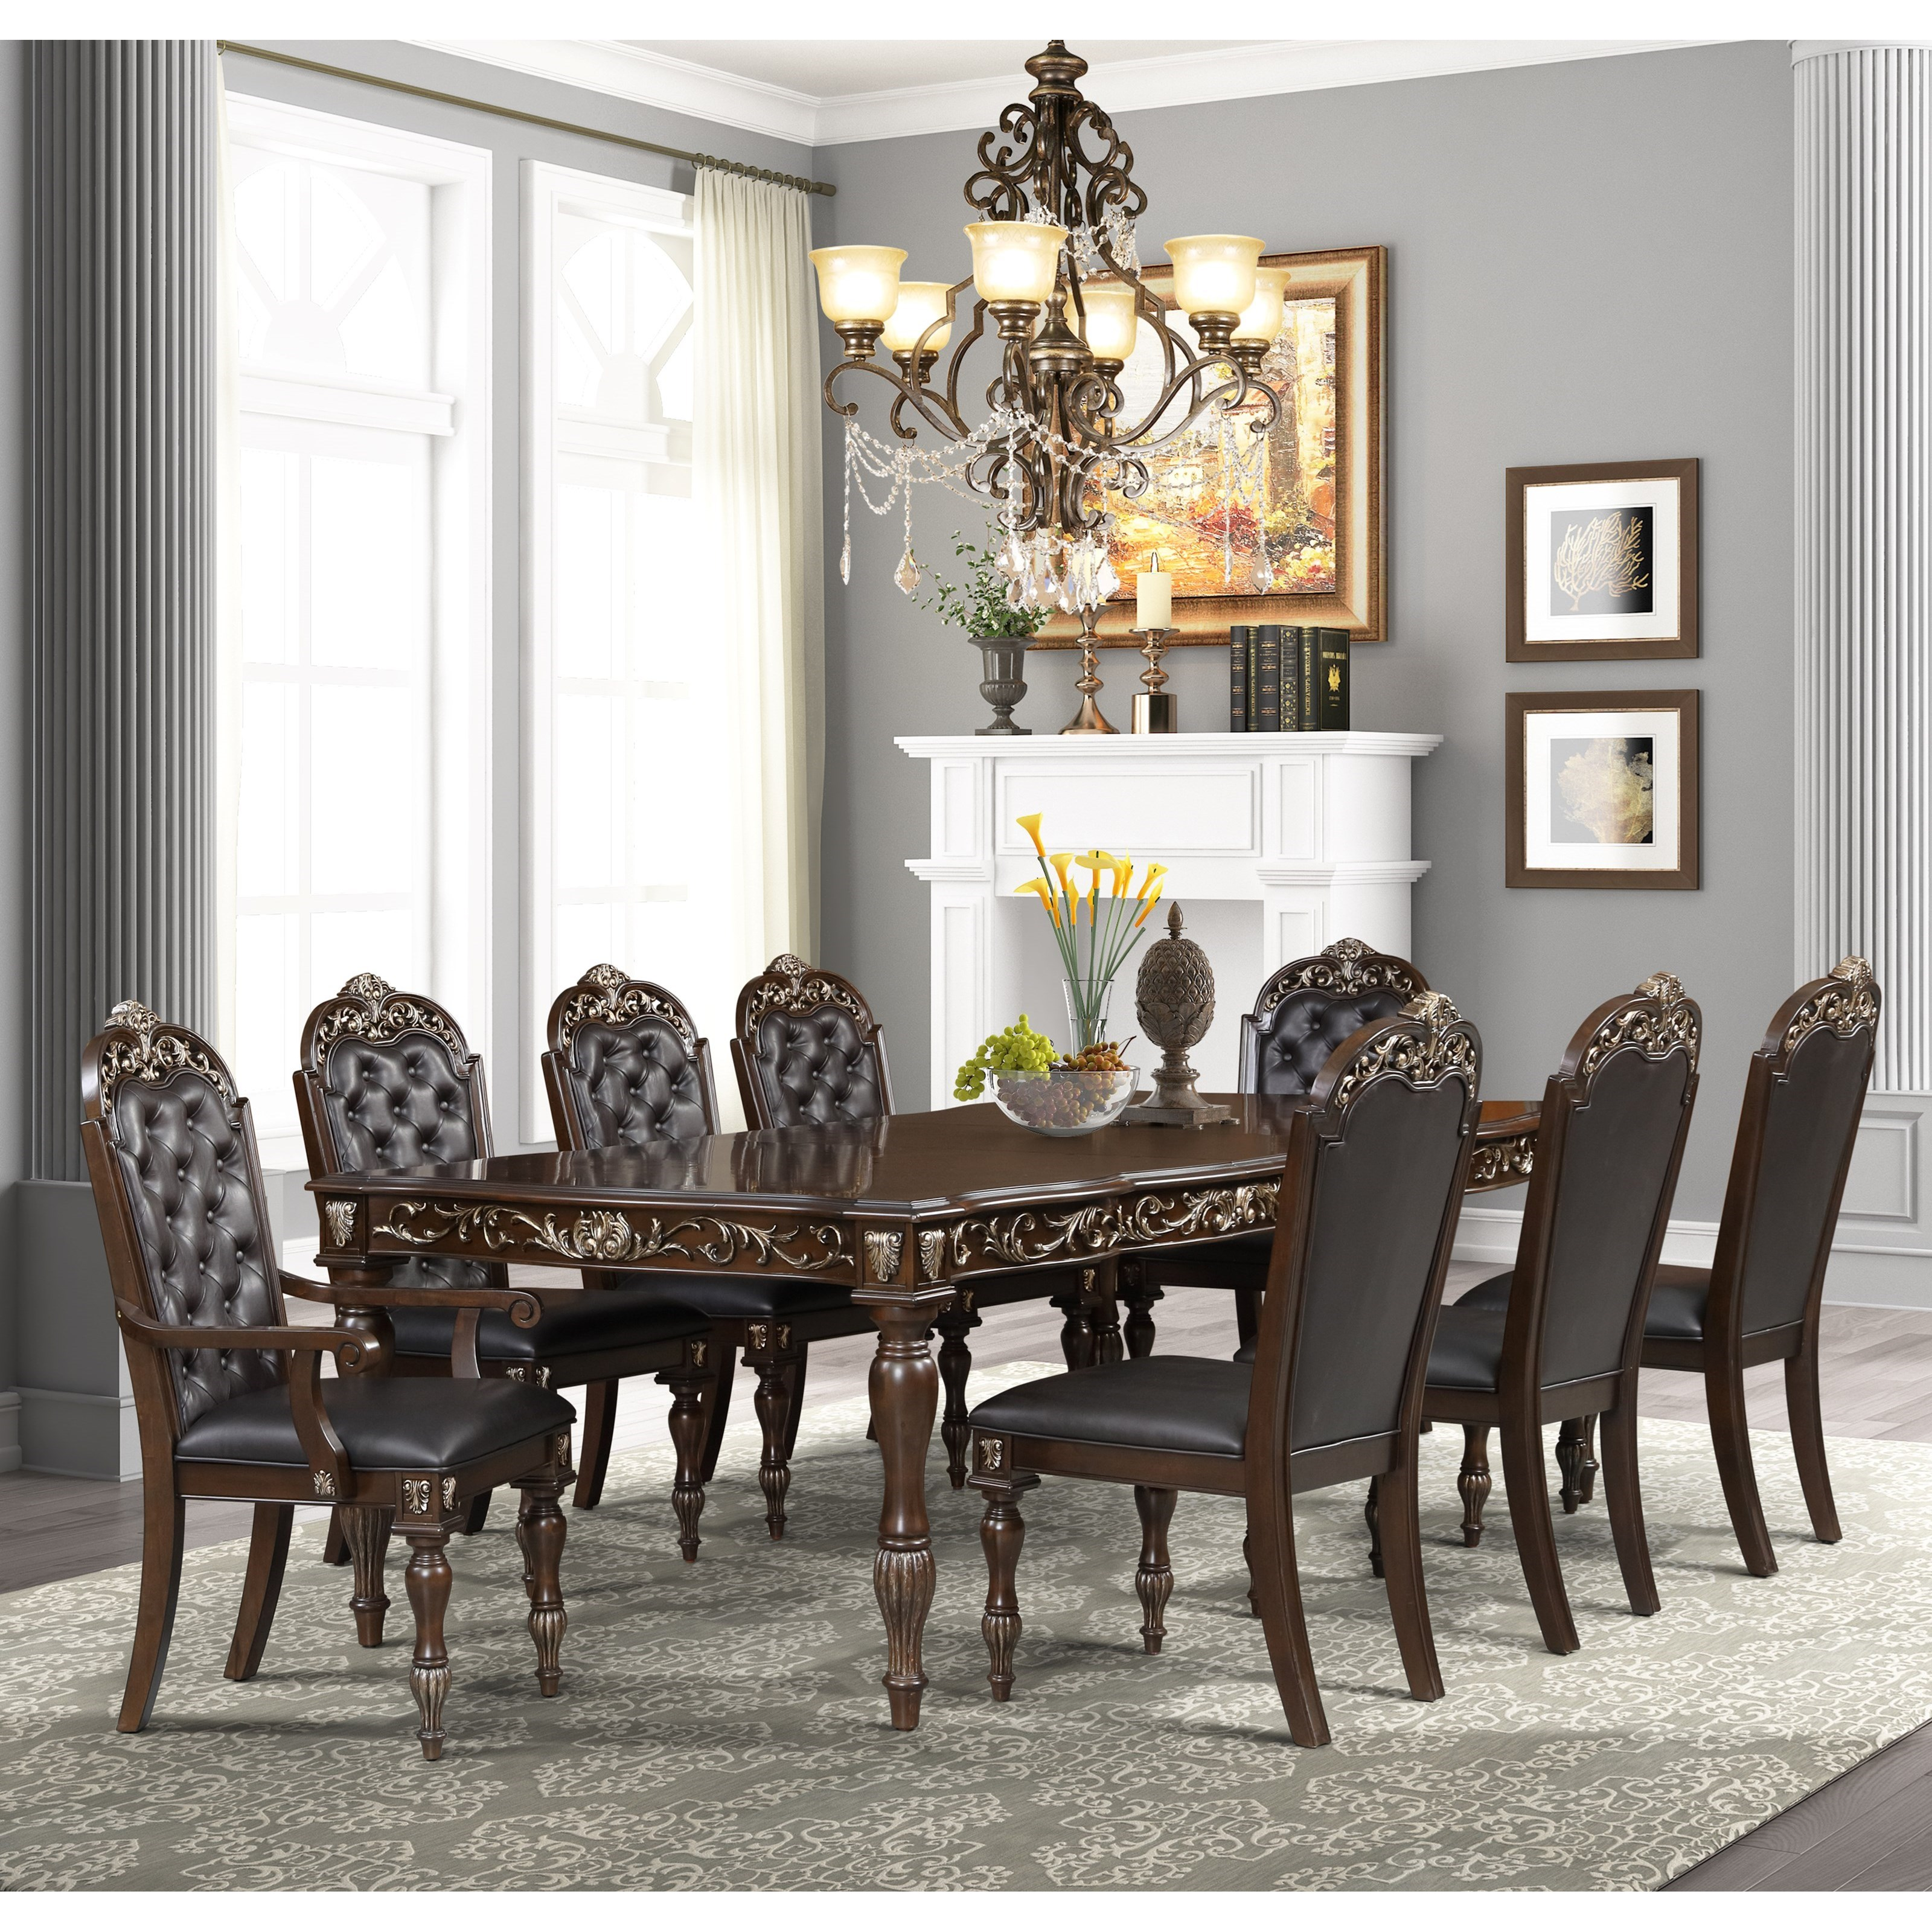 Maximus 9-Piece Table and Chair Set by New Classic at Furniture Superstore - Rochester, MN